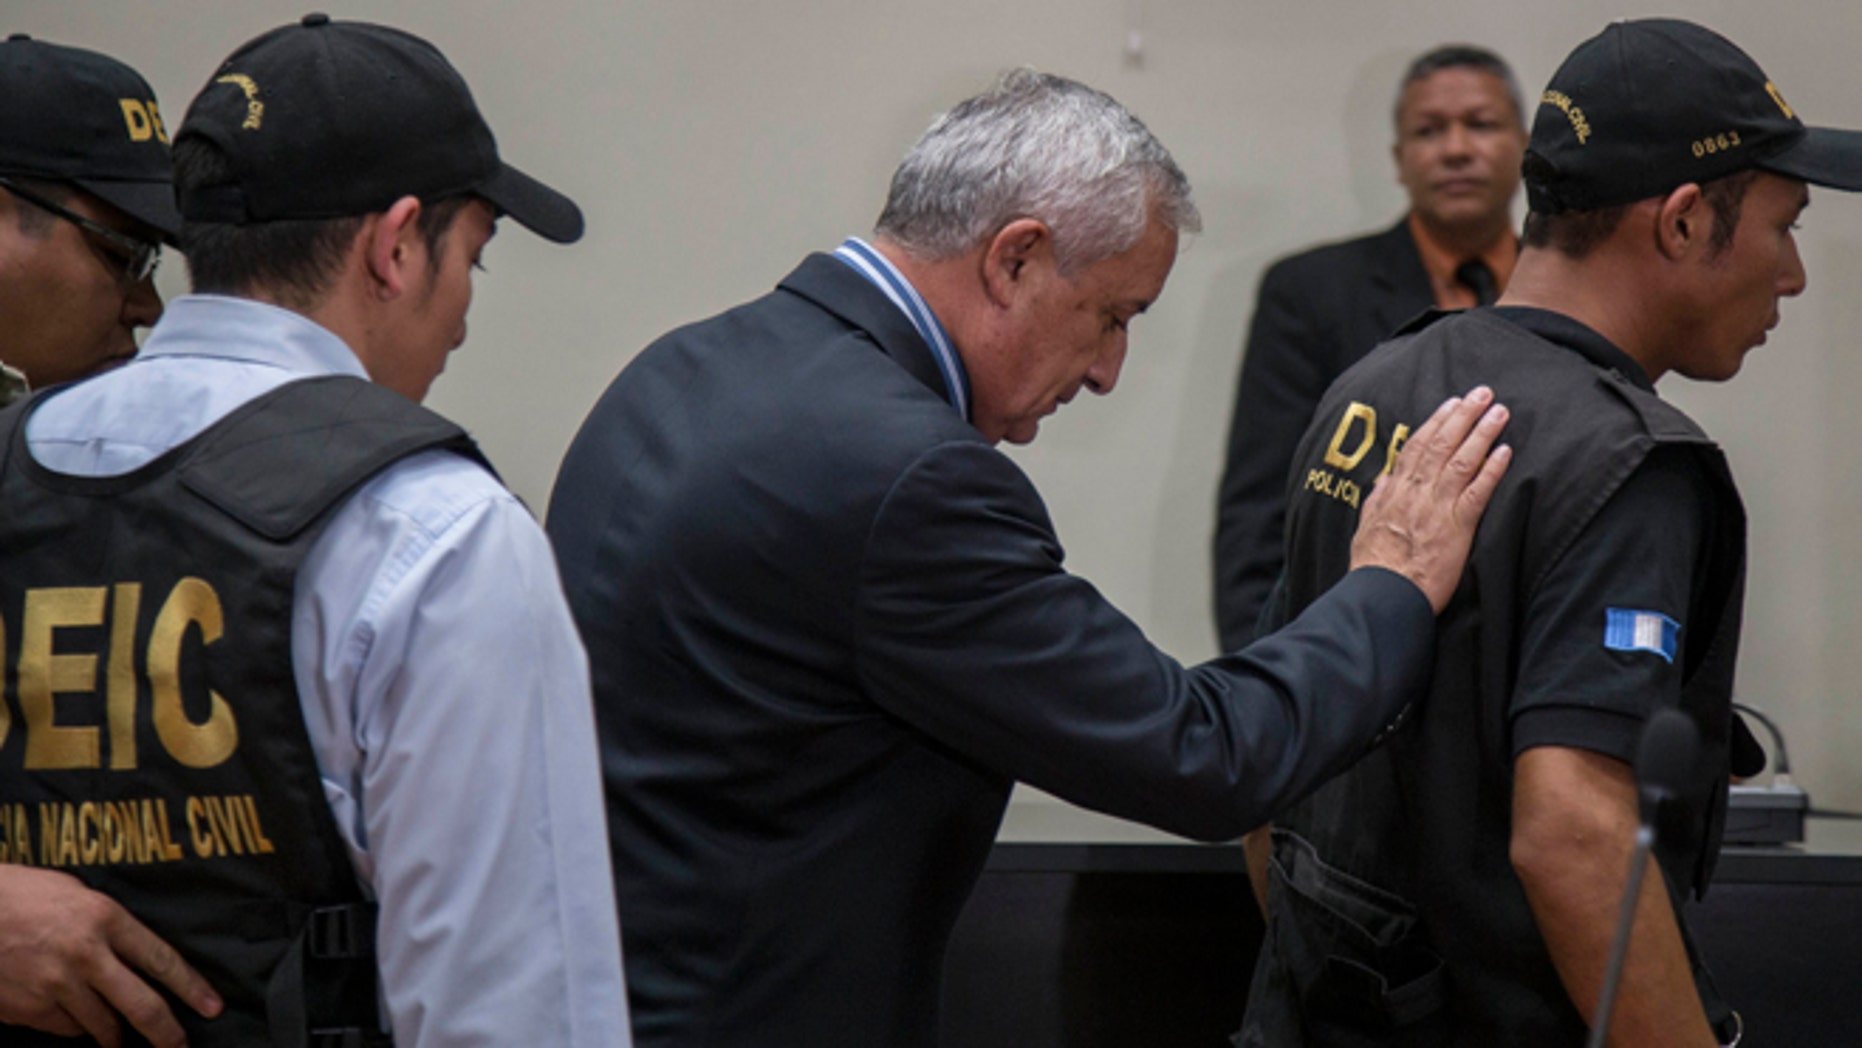 Former President of Guatemala Otto Perez Molina, center, is escorted by police detectives on his way to jail, after a court hearing where he faces corruption charges, in Guatemala City, Thursday, Sept. 3, 2015. Perez Molina was detained overnight before the hearing was to resume Friday morning. Judge Miguel Angel Galvez cited a need to âensure the continuity of the hearingâ and guarantee the former presidentâs personal safety.  (AP Photo/Luis Soto)